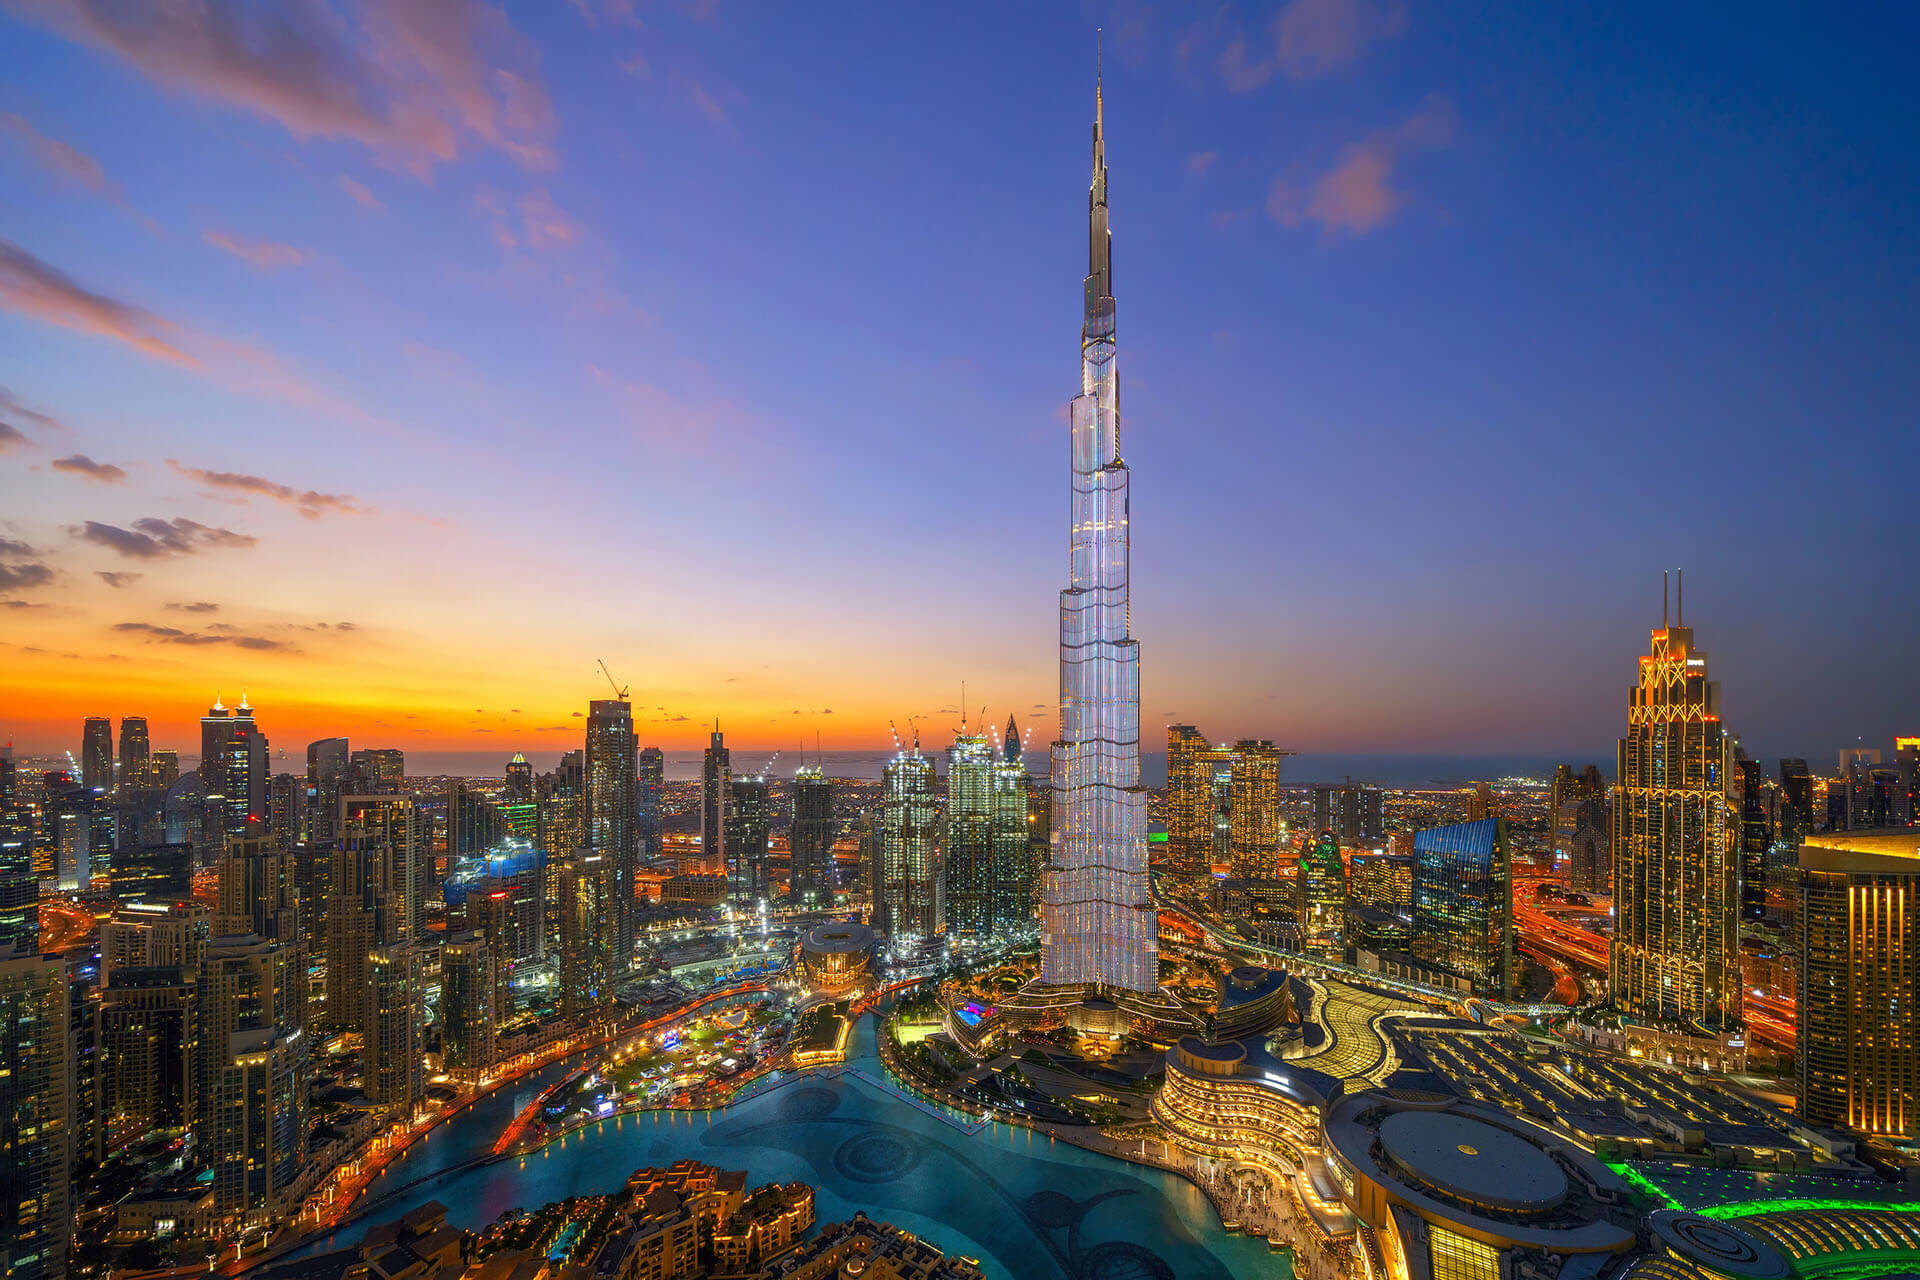 UAE: Cancellation of COVID-19 Testing Entry Requirements